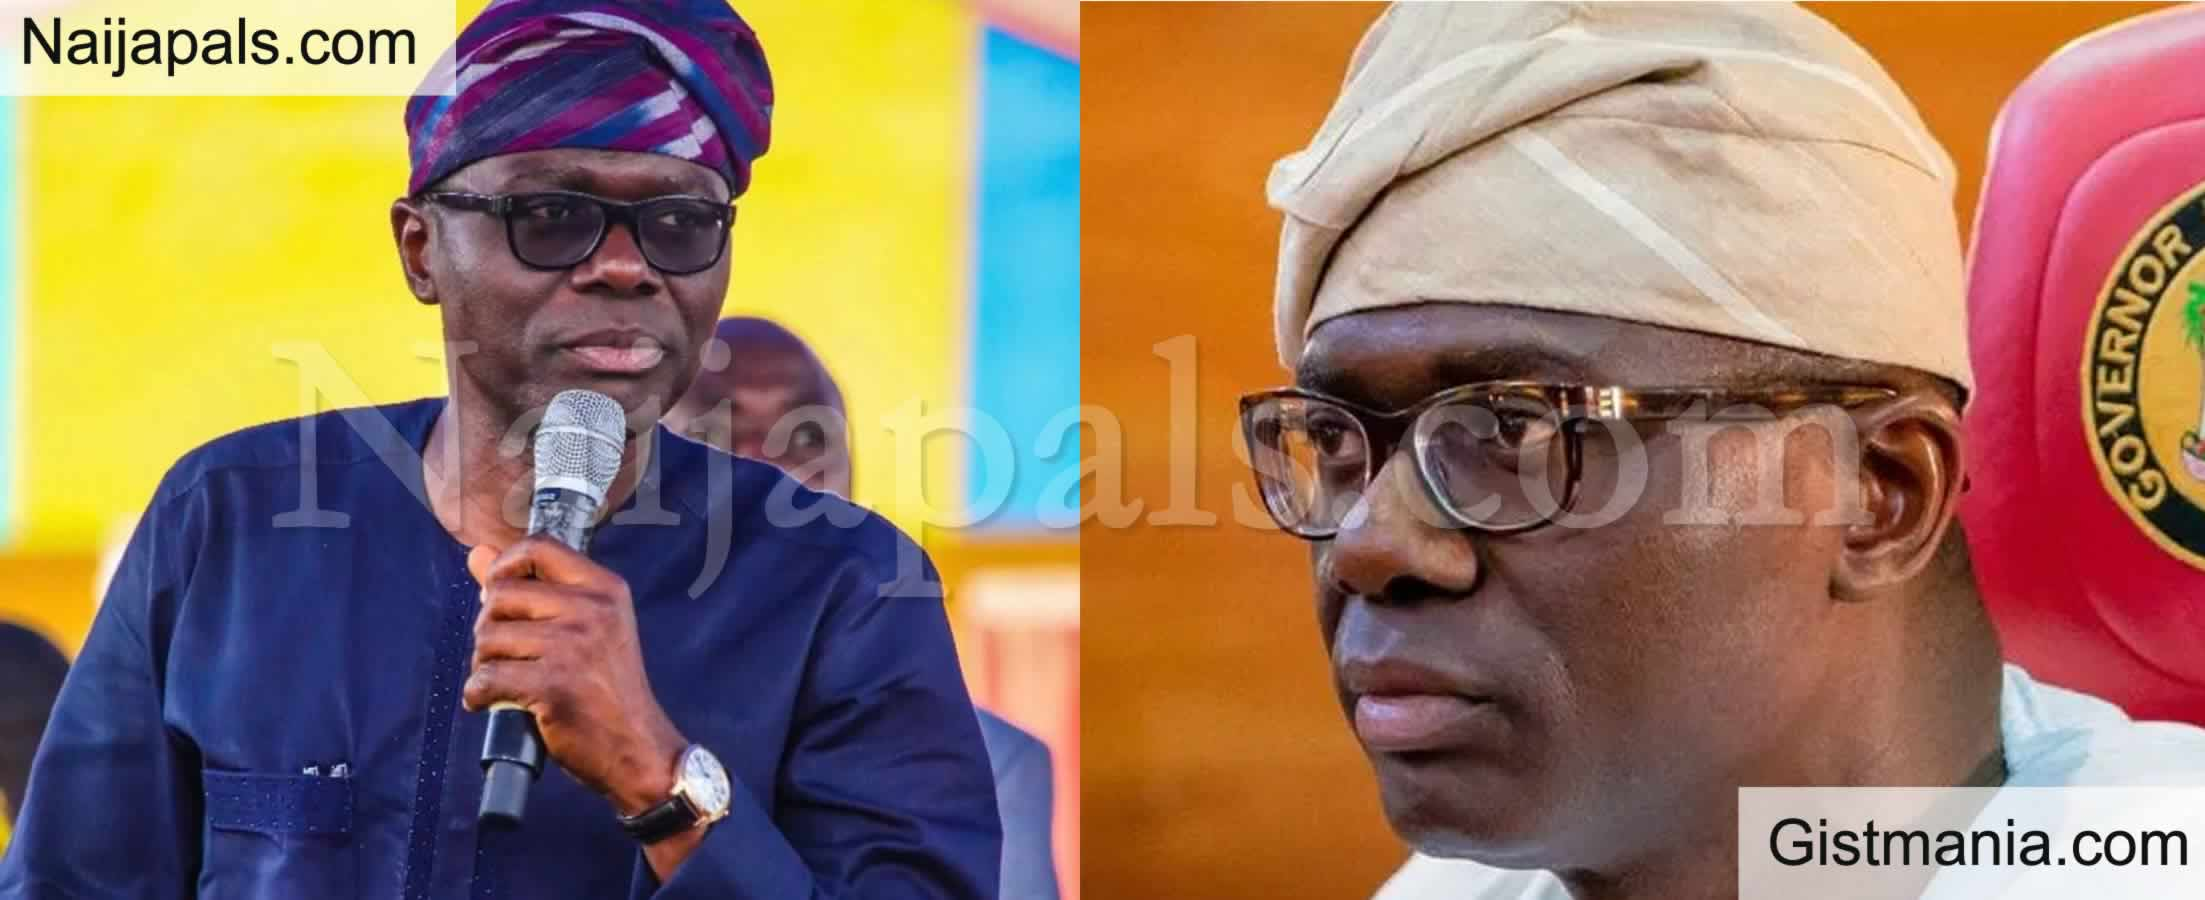 <img alt='.' class='lazyload' data-src='https://img.gistmania.com/emot/video.gif' /> <b>The Healing Of Lagos Has Started! Sanwo Olu Reveals As Eases The Curfew In Lagos State</b>